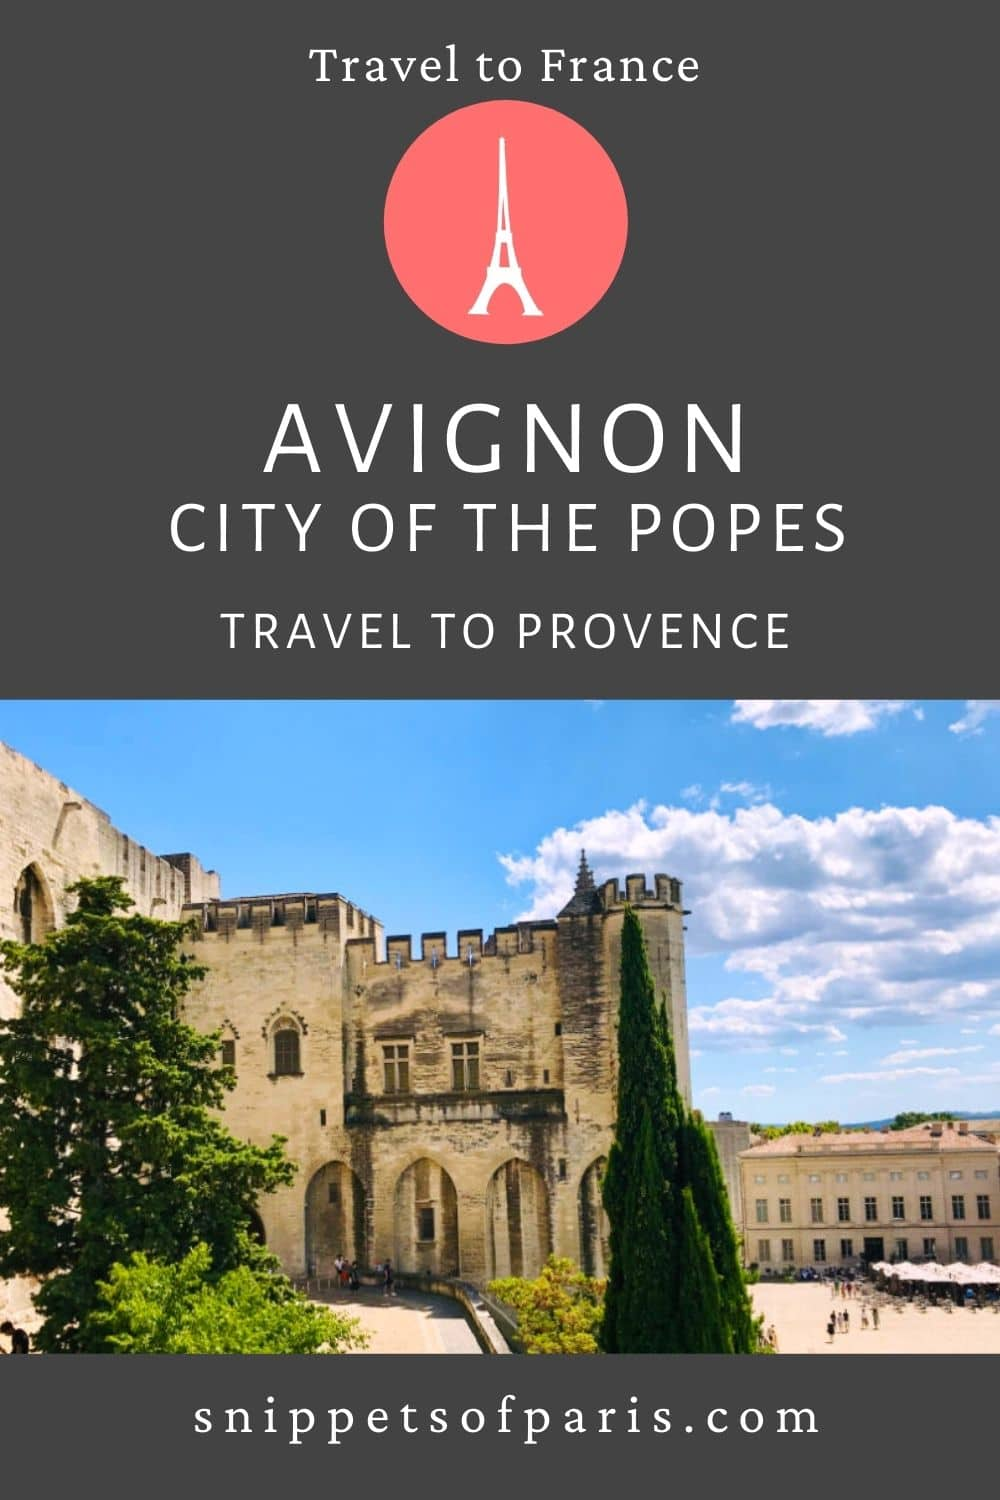 Avignon: The Papal city in the South of France